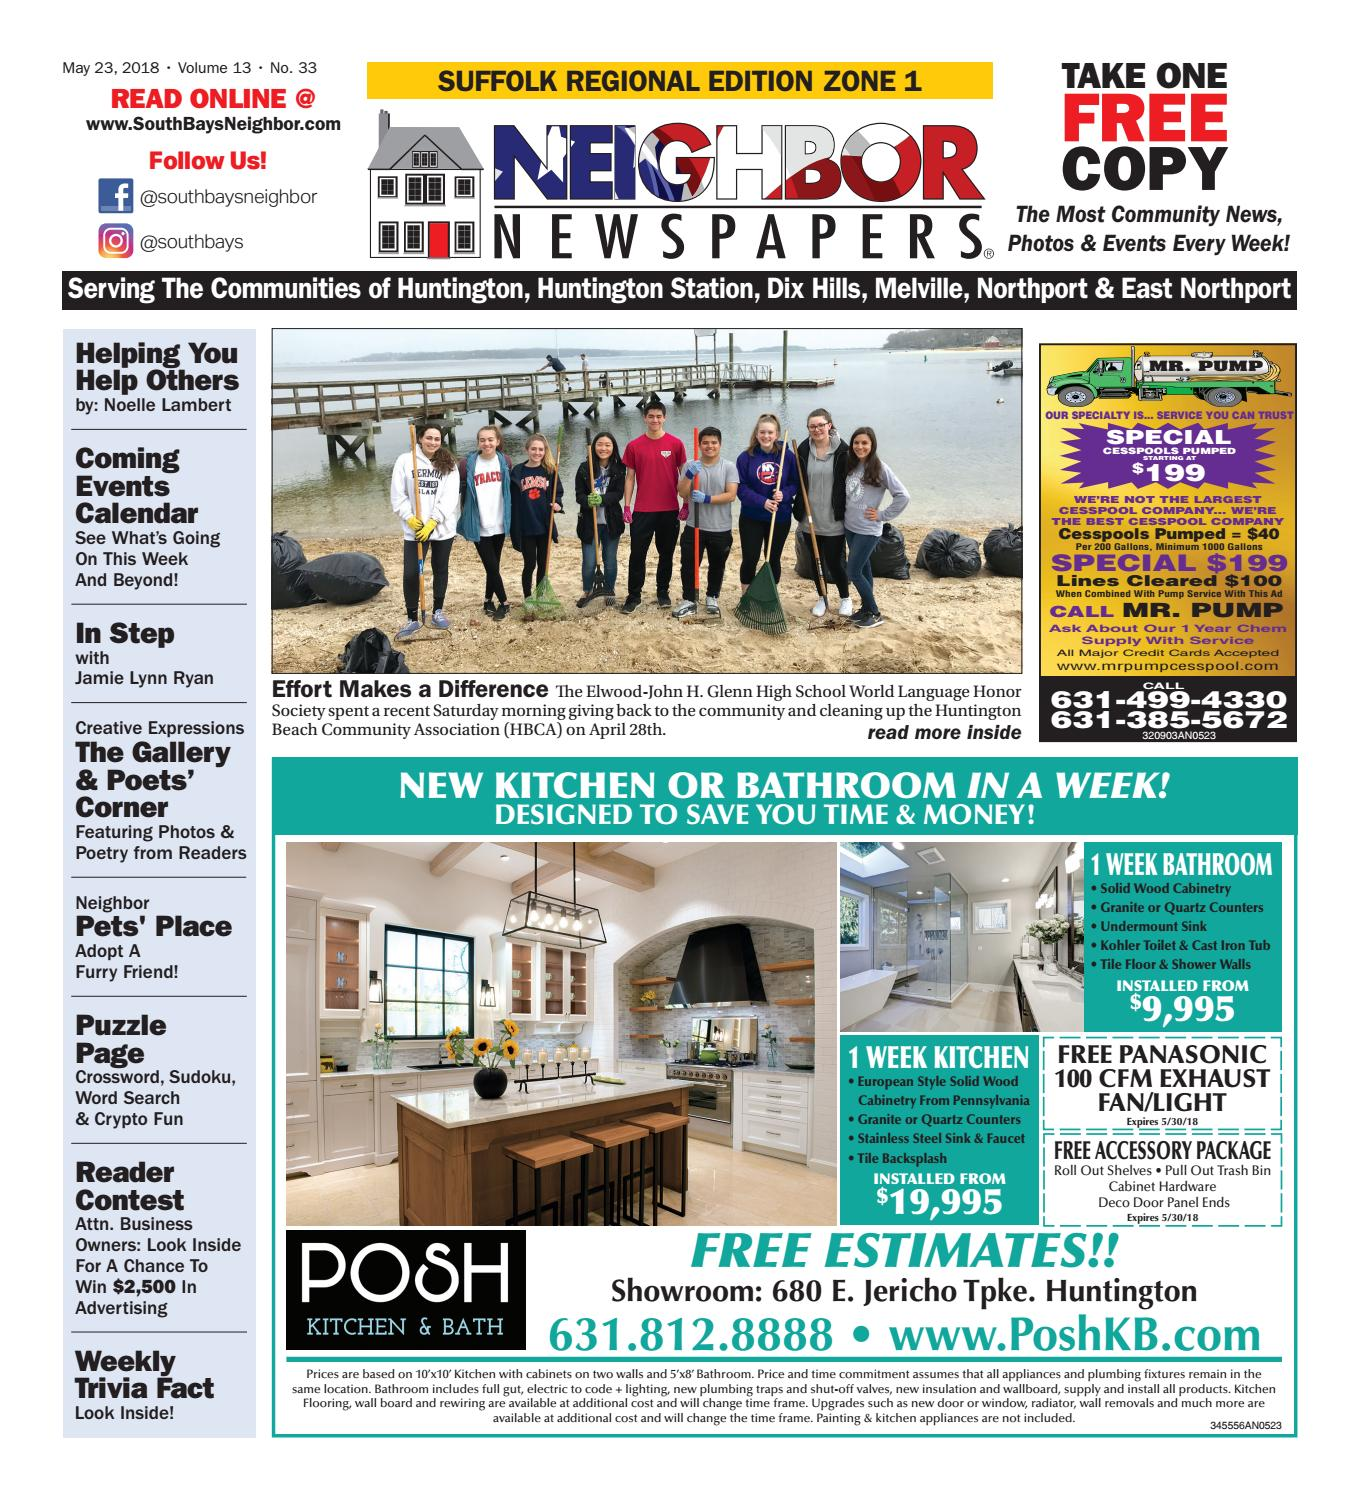 May 23rd, 2018 Suffolk Zone 1 by South Bay's Neighbor Newspapers - on amityville kitchen, oyster bay kitchen, sweet home kitchen, brooklyn kitchen, vineyard kitchen, charlotte kitchen, stepney kitchen, honolulu kitchen, new orleans kitchen, east hampton kitchen, louisville kitchen, charleston kitchen, santa fe kitchen, florida kitchen, corporate design kitchen, elmo kitchen, new york kitchen, hawaii kitchen, hometown kitchen, cobblestone kitchen,